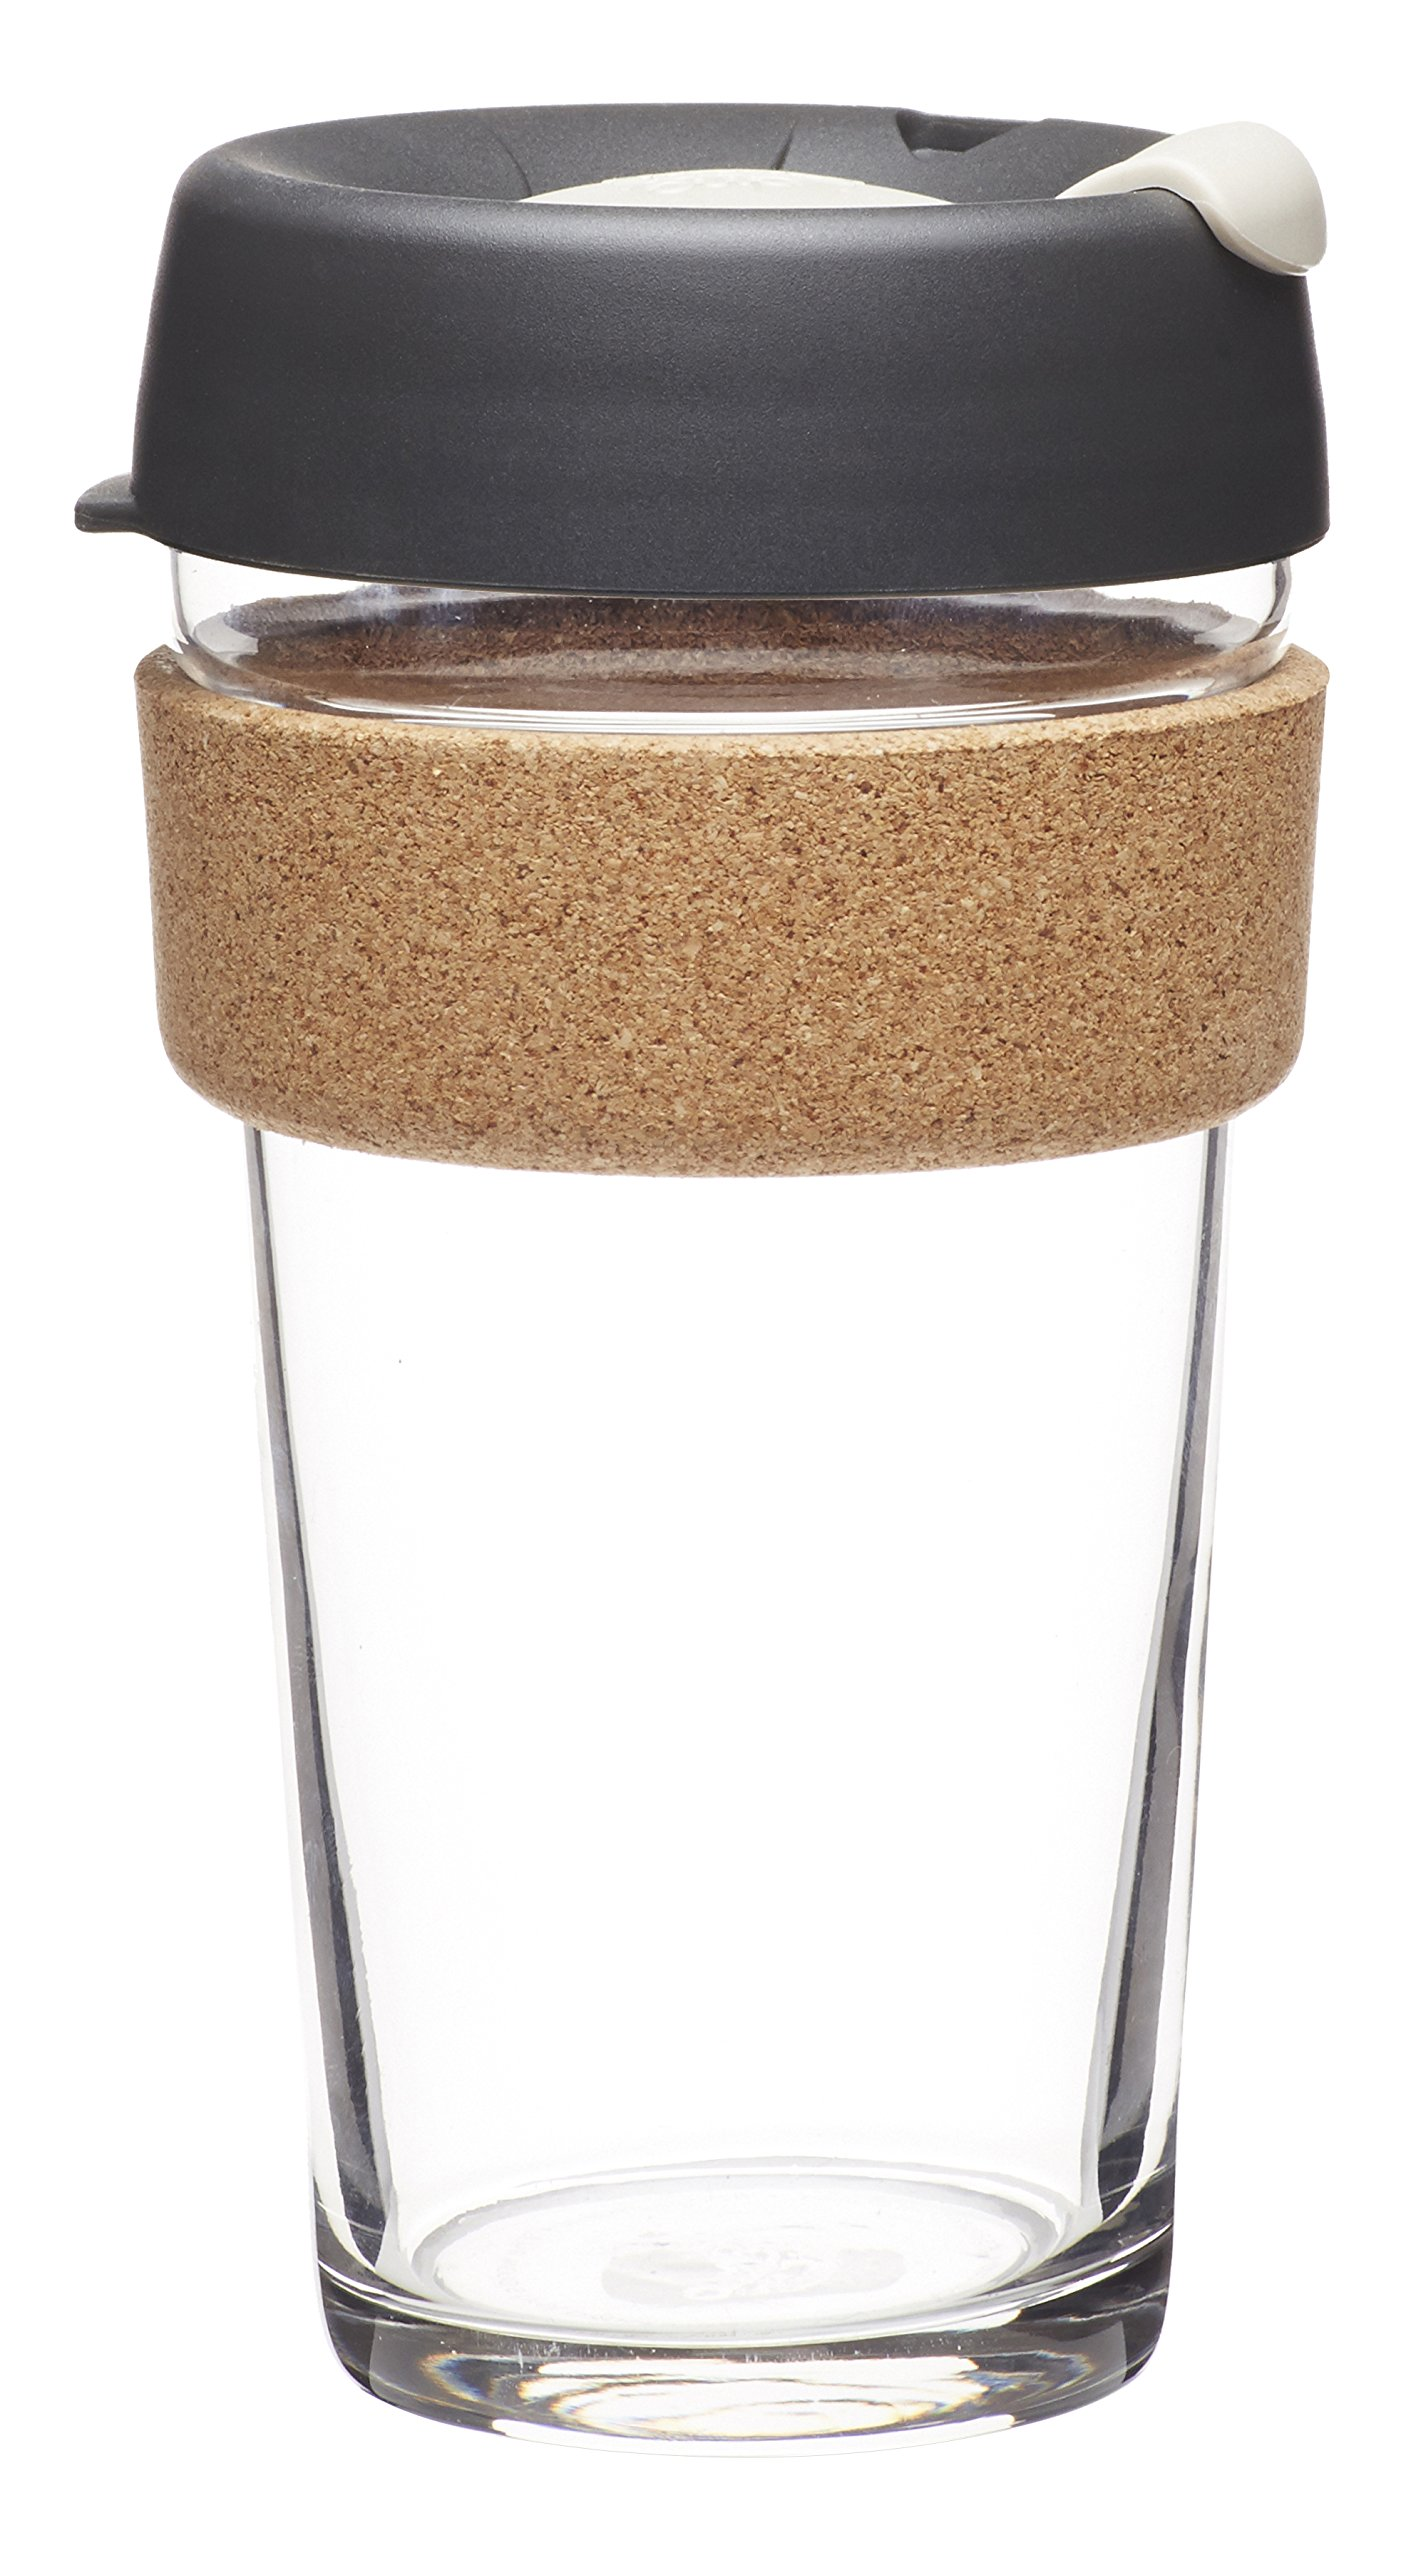 KeepCup 16oz Reusable Coffee Cup. Toughened Glass Cup & Natural Cork Band. 16-Ounce/Large, Press by KeepCup (Image #1)